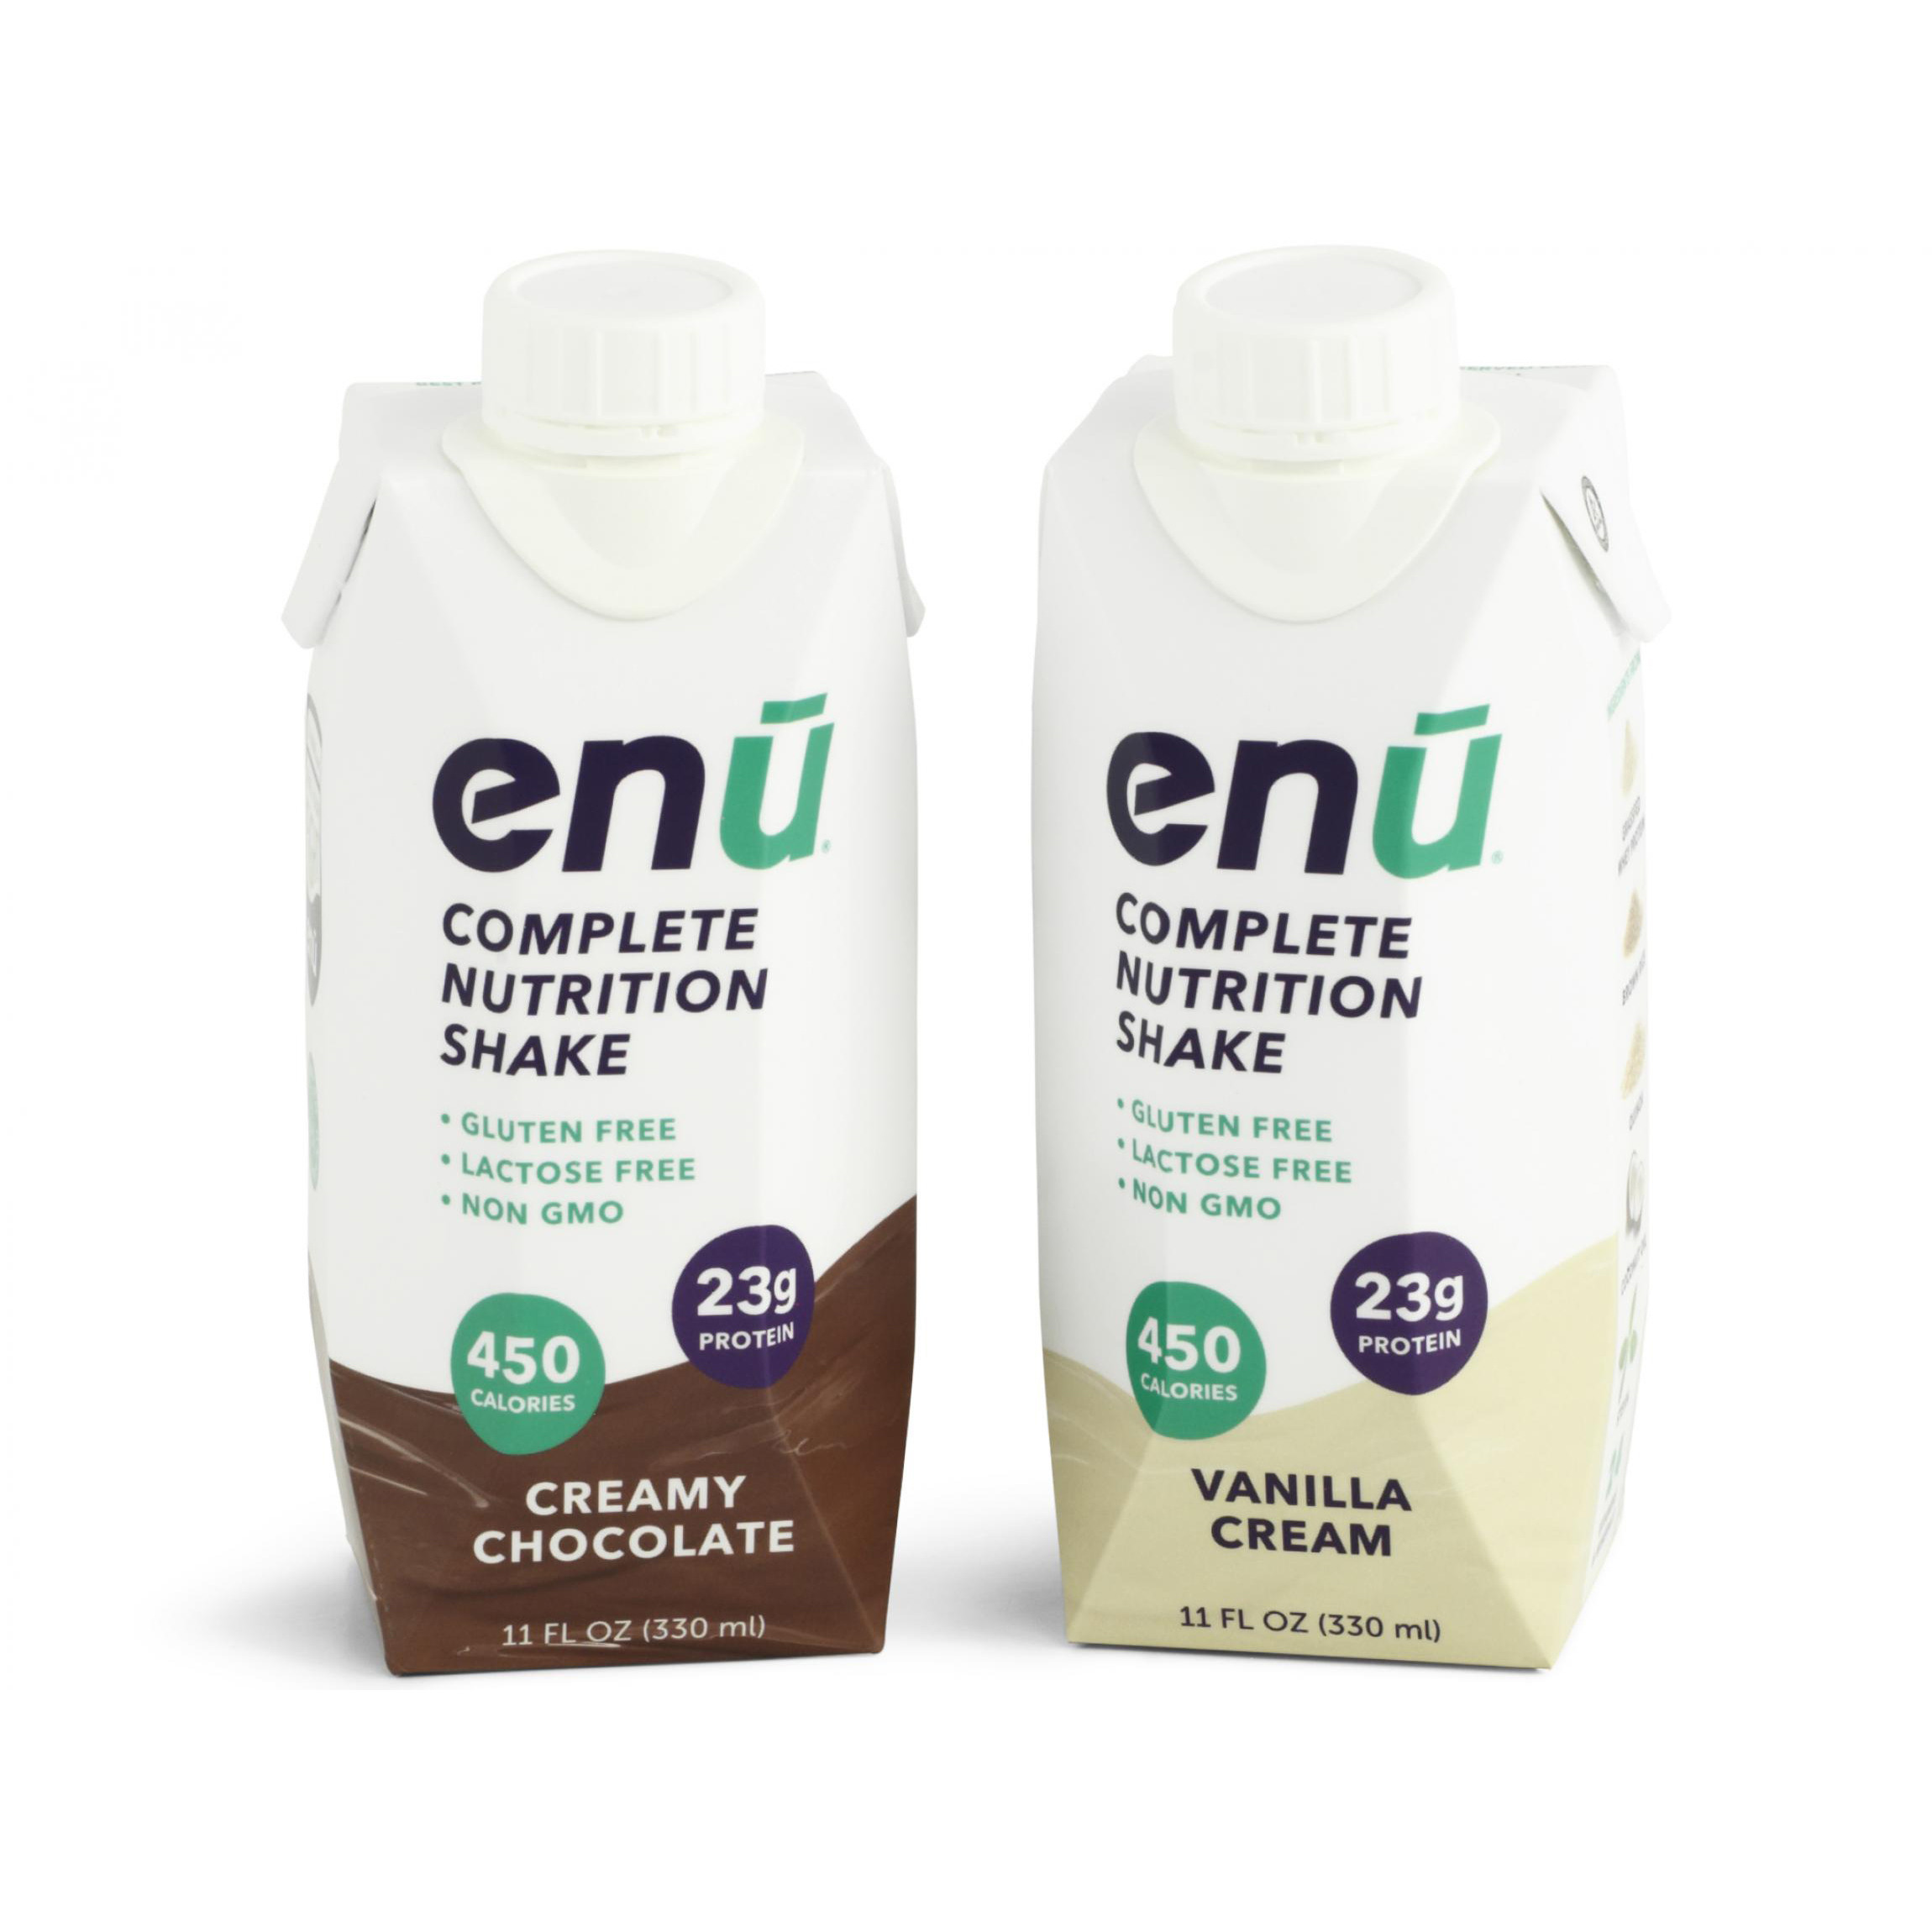 Enu Nutrition Shakes, Tetra Pak® style drink carton packaging mockups.